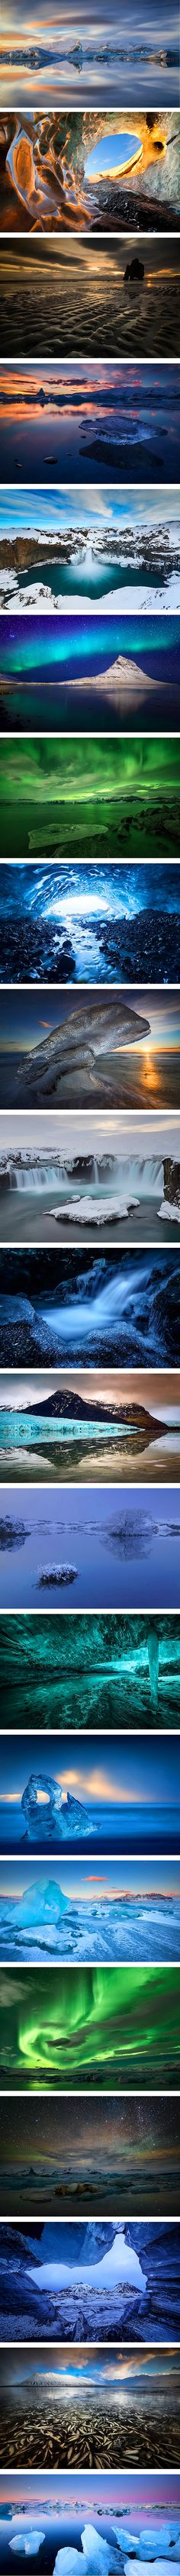 When nature photographer Erez Marom recently reached out to us to share his Iceland photographs, we were in complete awe of the breathtaking places—including Godafoss, one of the most spectacular waterfalls in the whole world—that the artist captures through his adventurous explorations. Each magical landscape conveys the silent and dazzling beauty that Iceland has to offer.